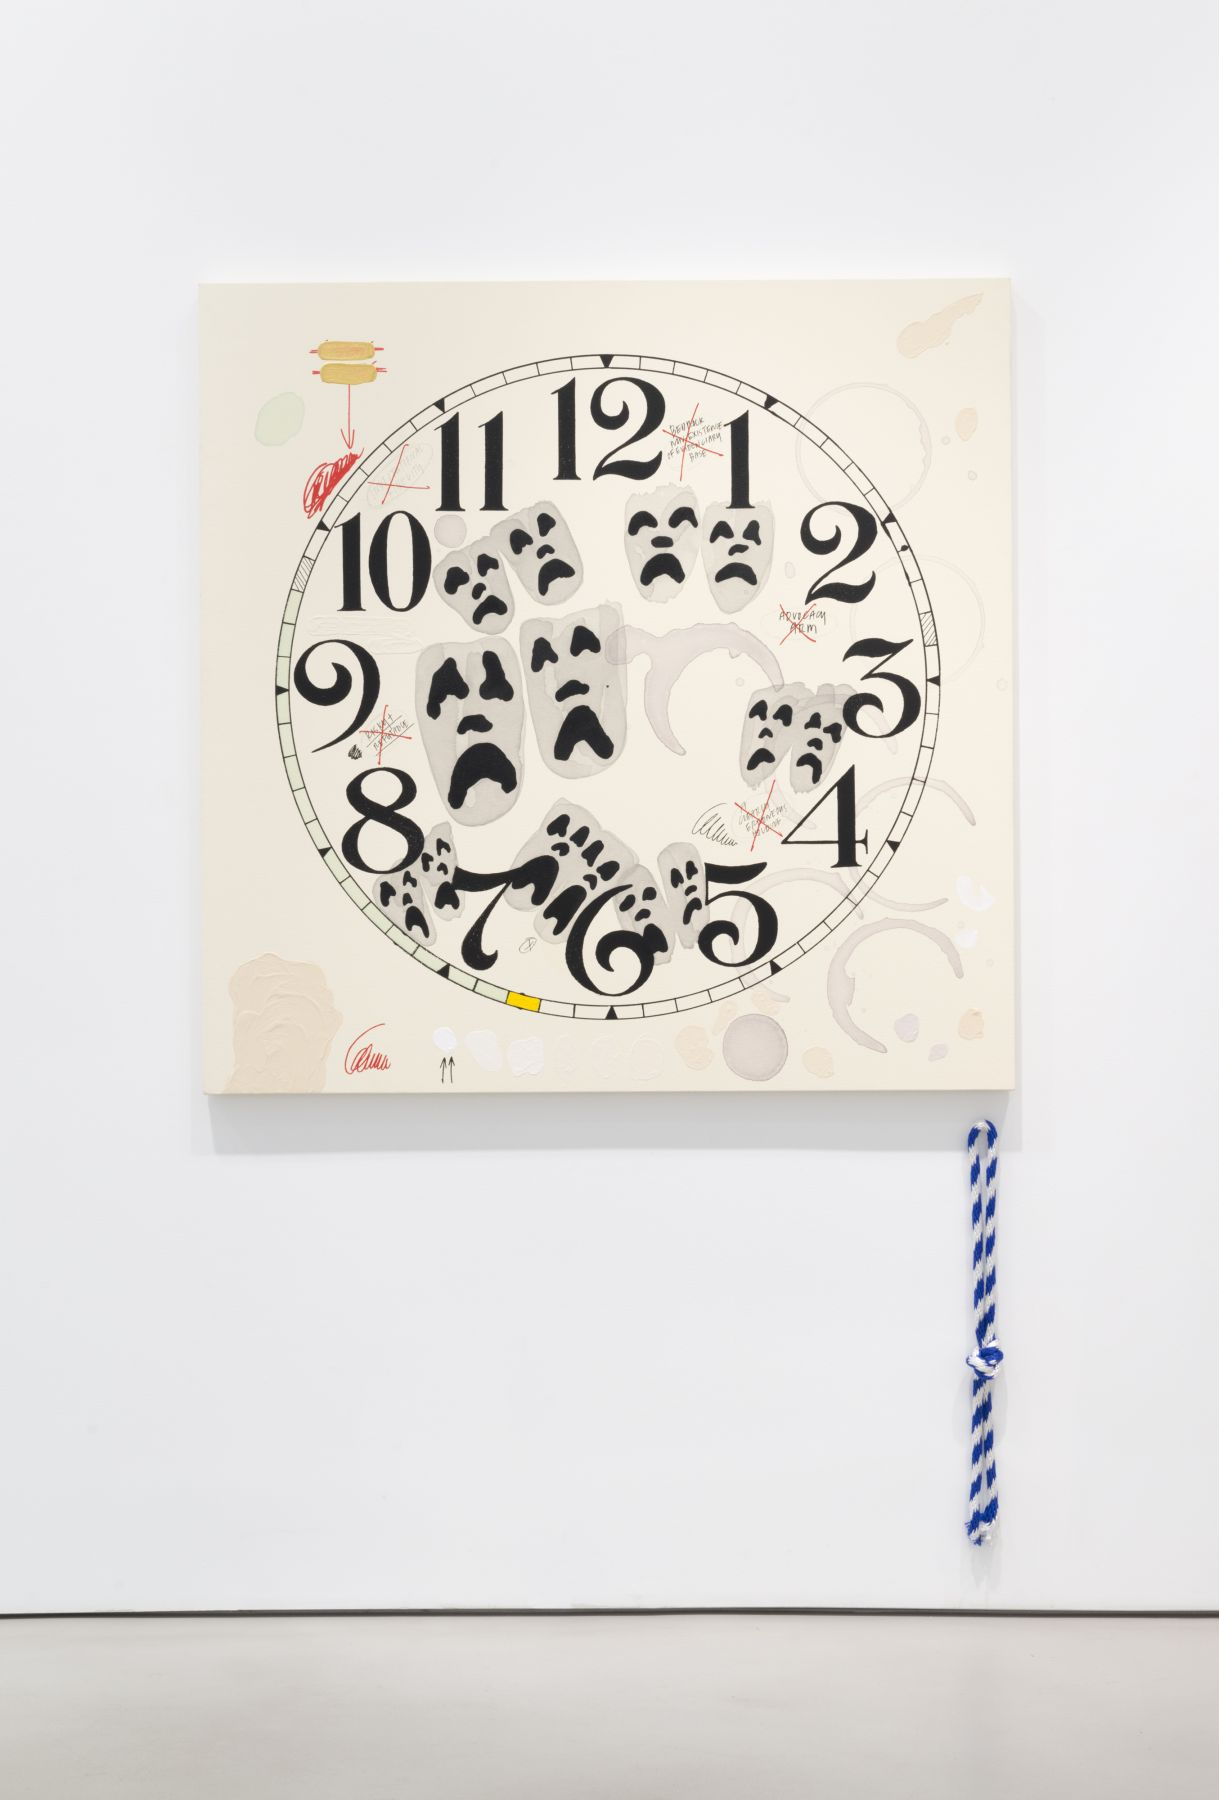 AMANDA ROSS-HO Untitled Timepiece (A CLEARLY ERRONEOUS HOLDING)